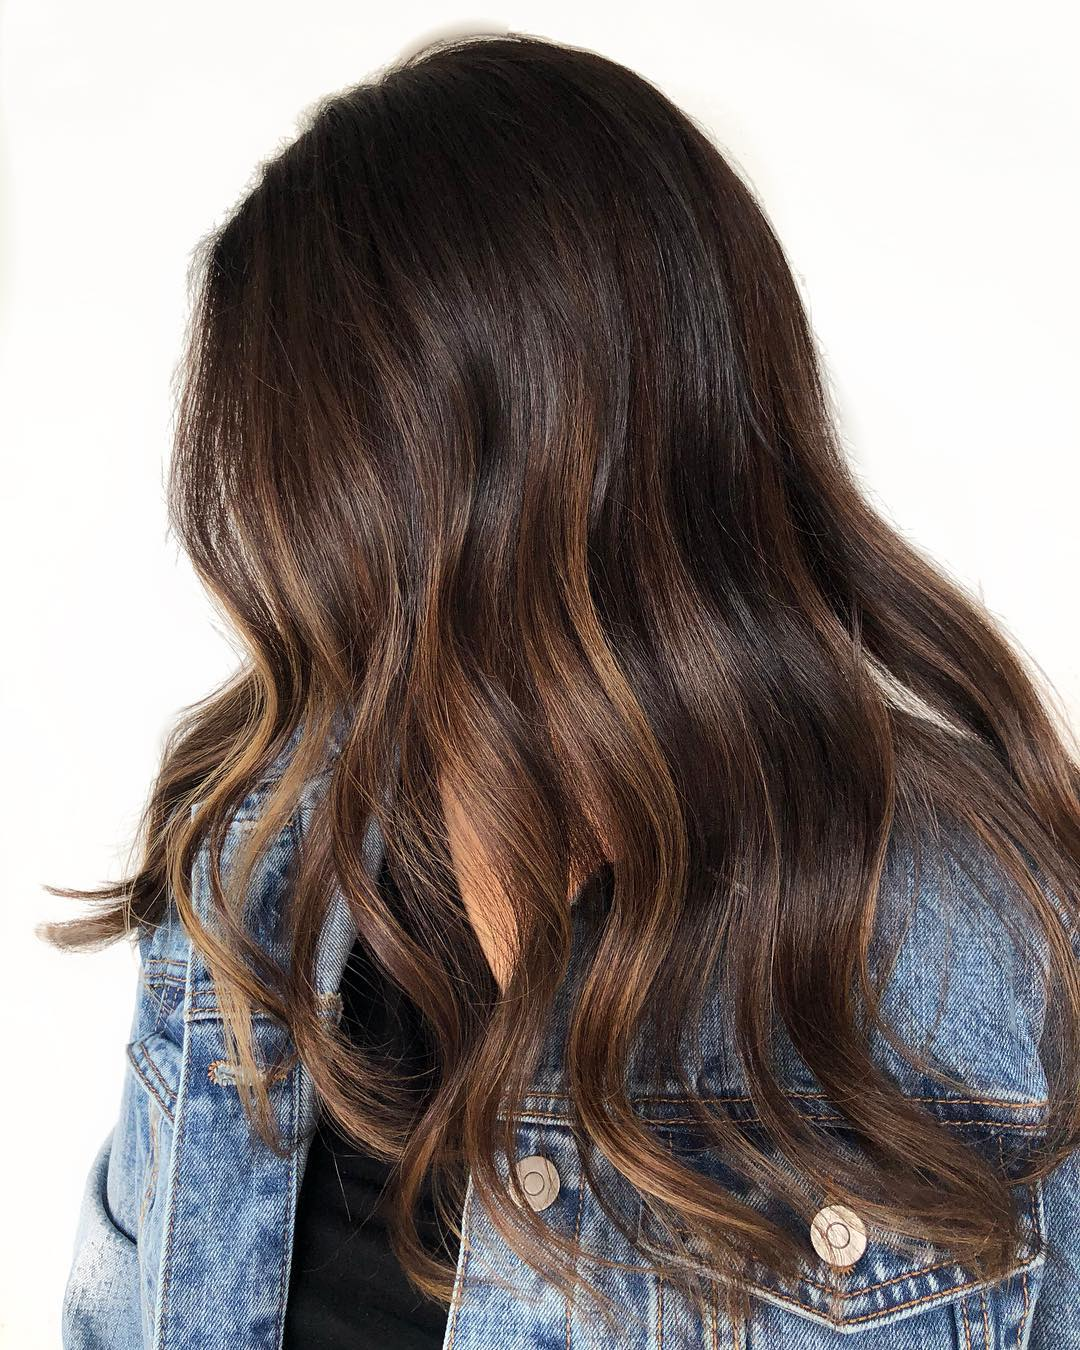 Ombre Balayage Highlights on Dark Hair